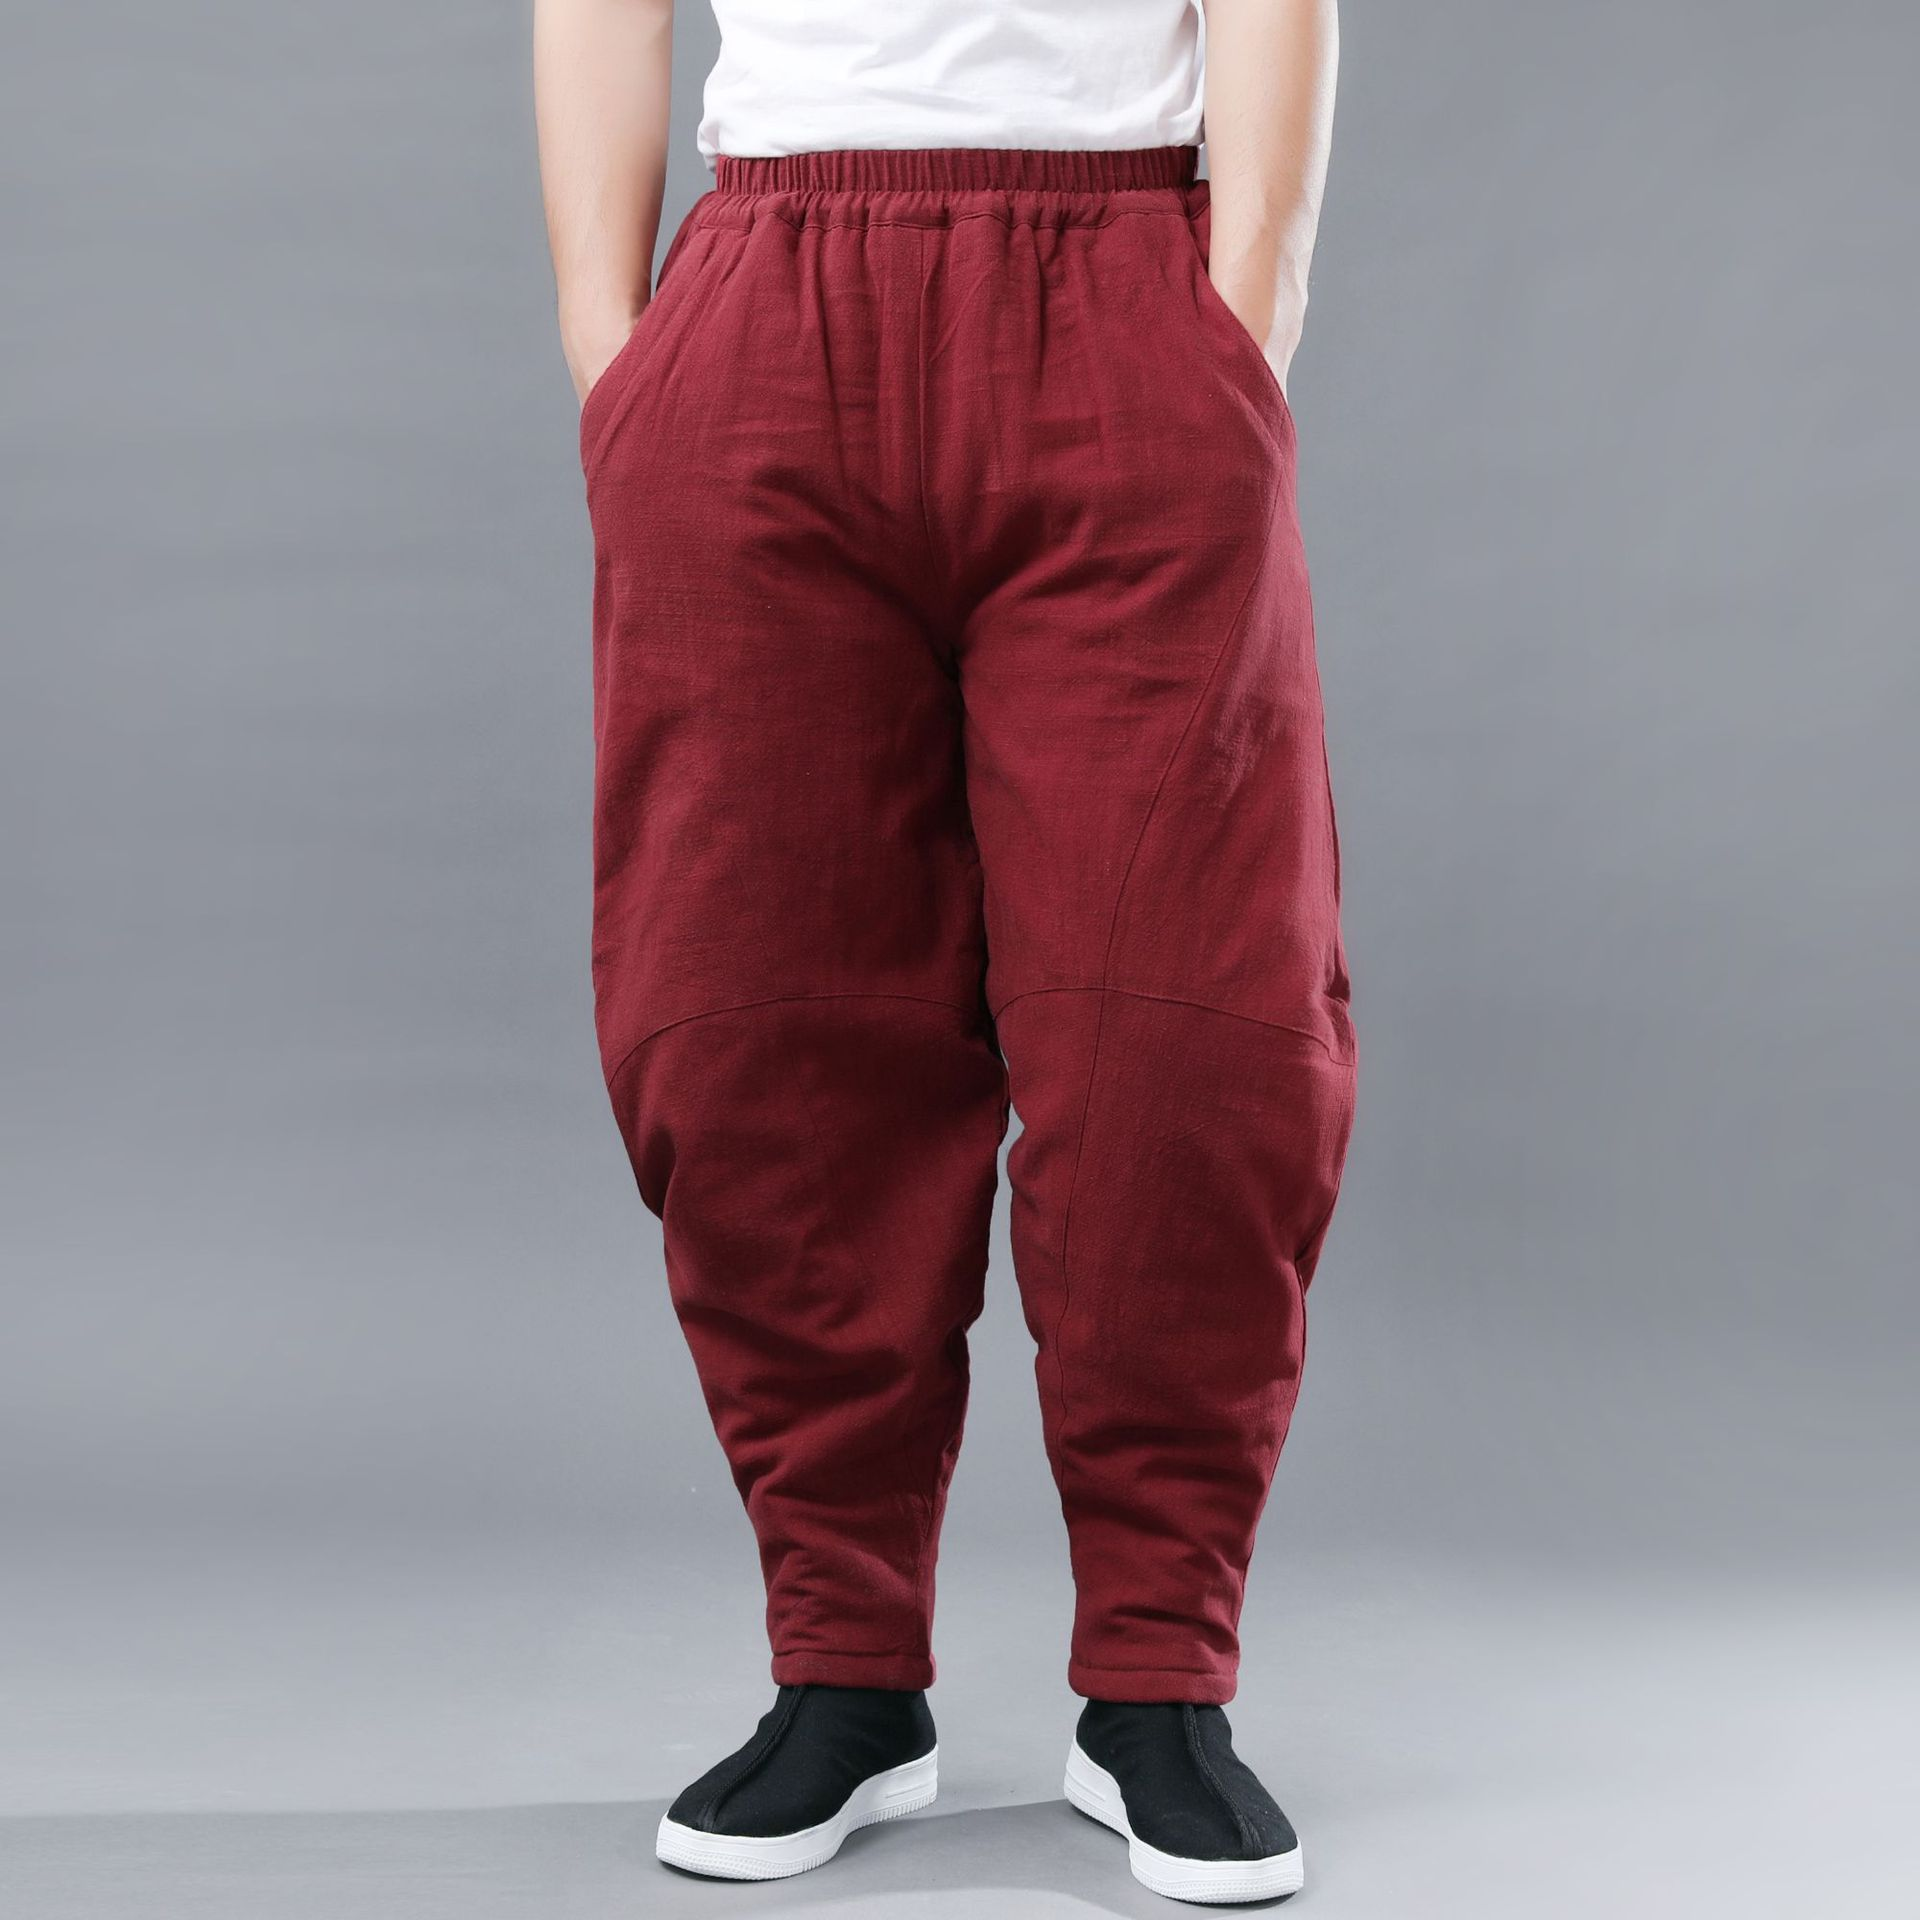 Winter New Style Double Cotton-padded Trousers Cotton Linen Thick Men's Warm Casual Pants Retro Literature And Art-Style Trouser